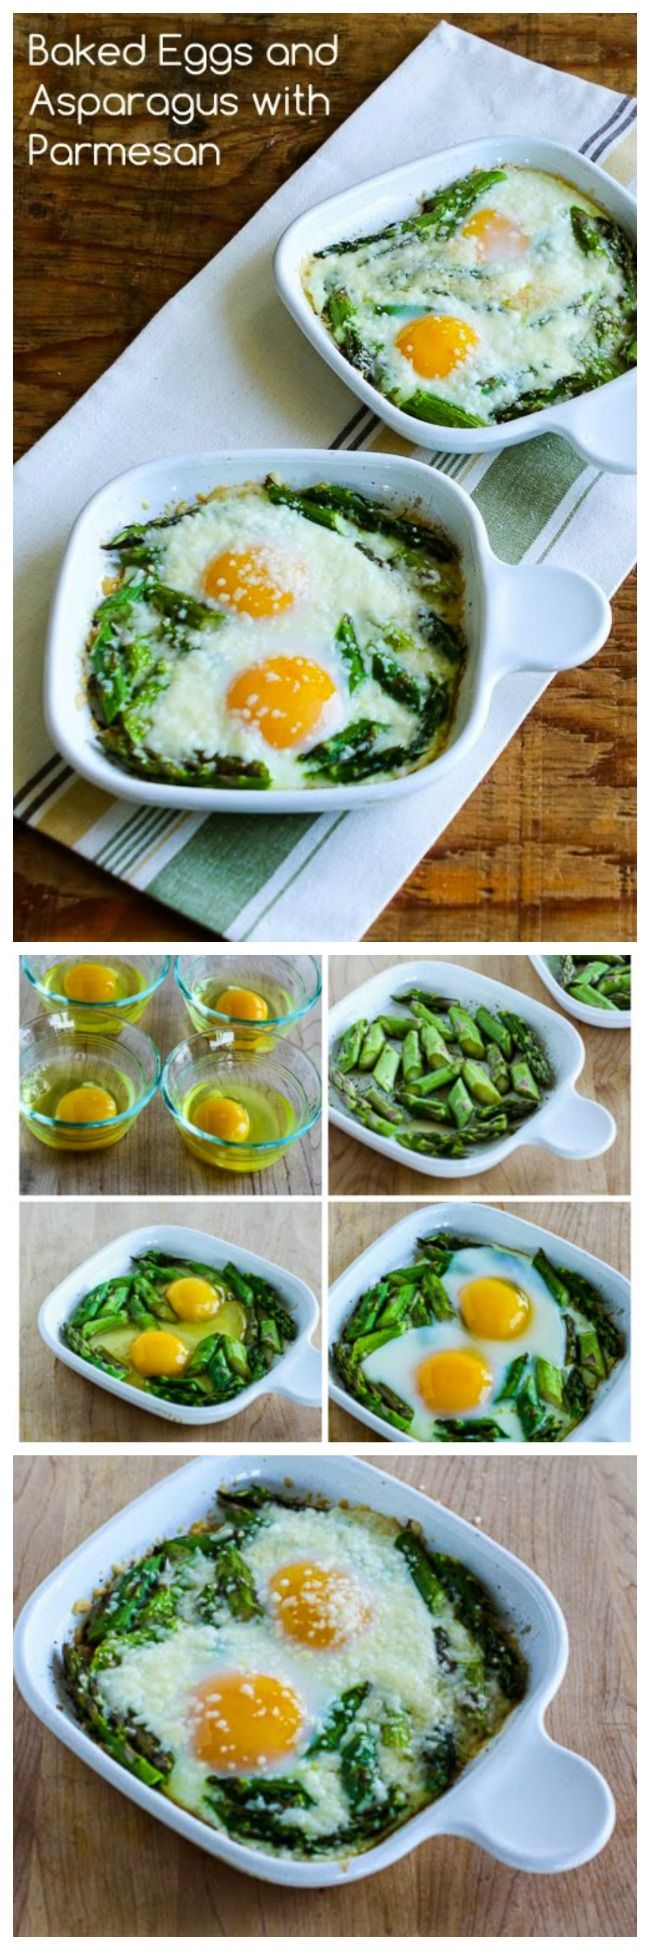 Baked Eggs and Asparagus with Parmesan is a real treat for breakfast, and this recipe has a few simple tricks to make sure your eggs turn out just the way you like them. This would be lovely to make for guests, or make it for a treat for mom on Mother's Day. #LowCarb #GlutenFree [from KalynsKitchen.com]